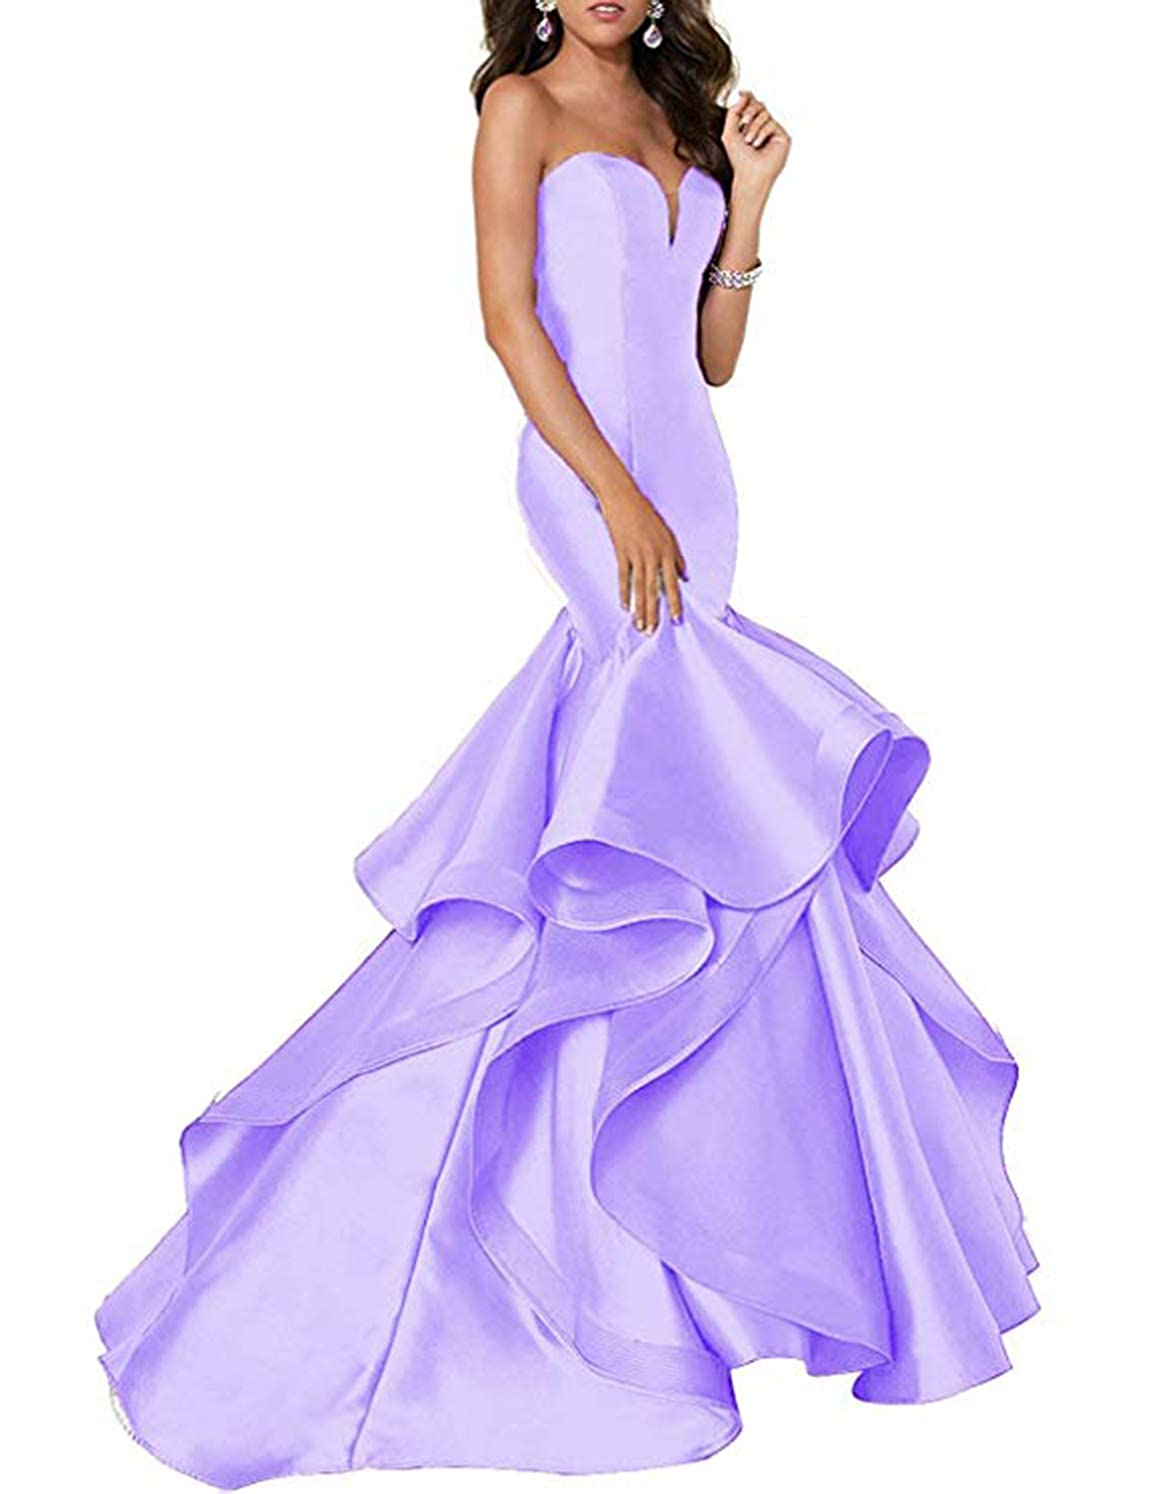 Light Lavender Scarisee Women's Sweetheart Mermaid Prom Evening Party Dresses Tiered FormalSA51